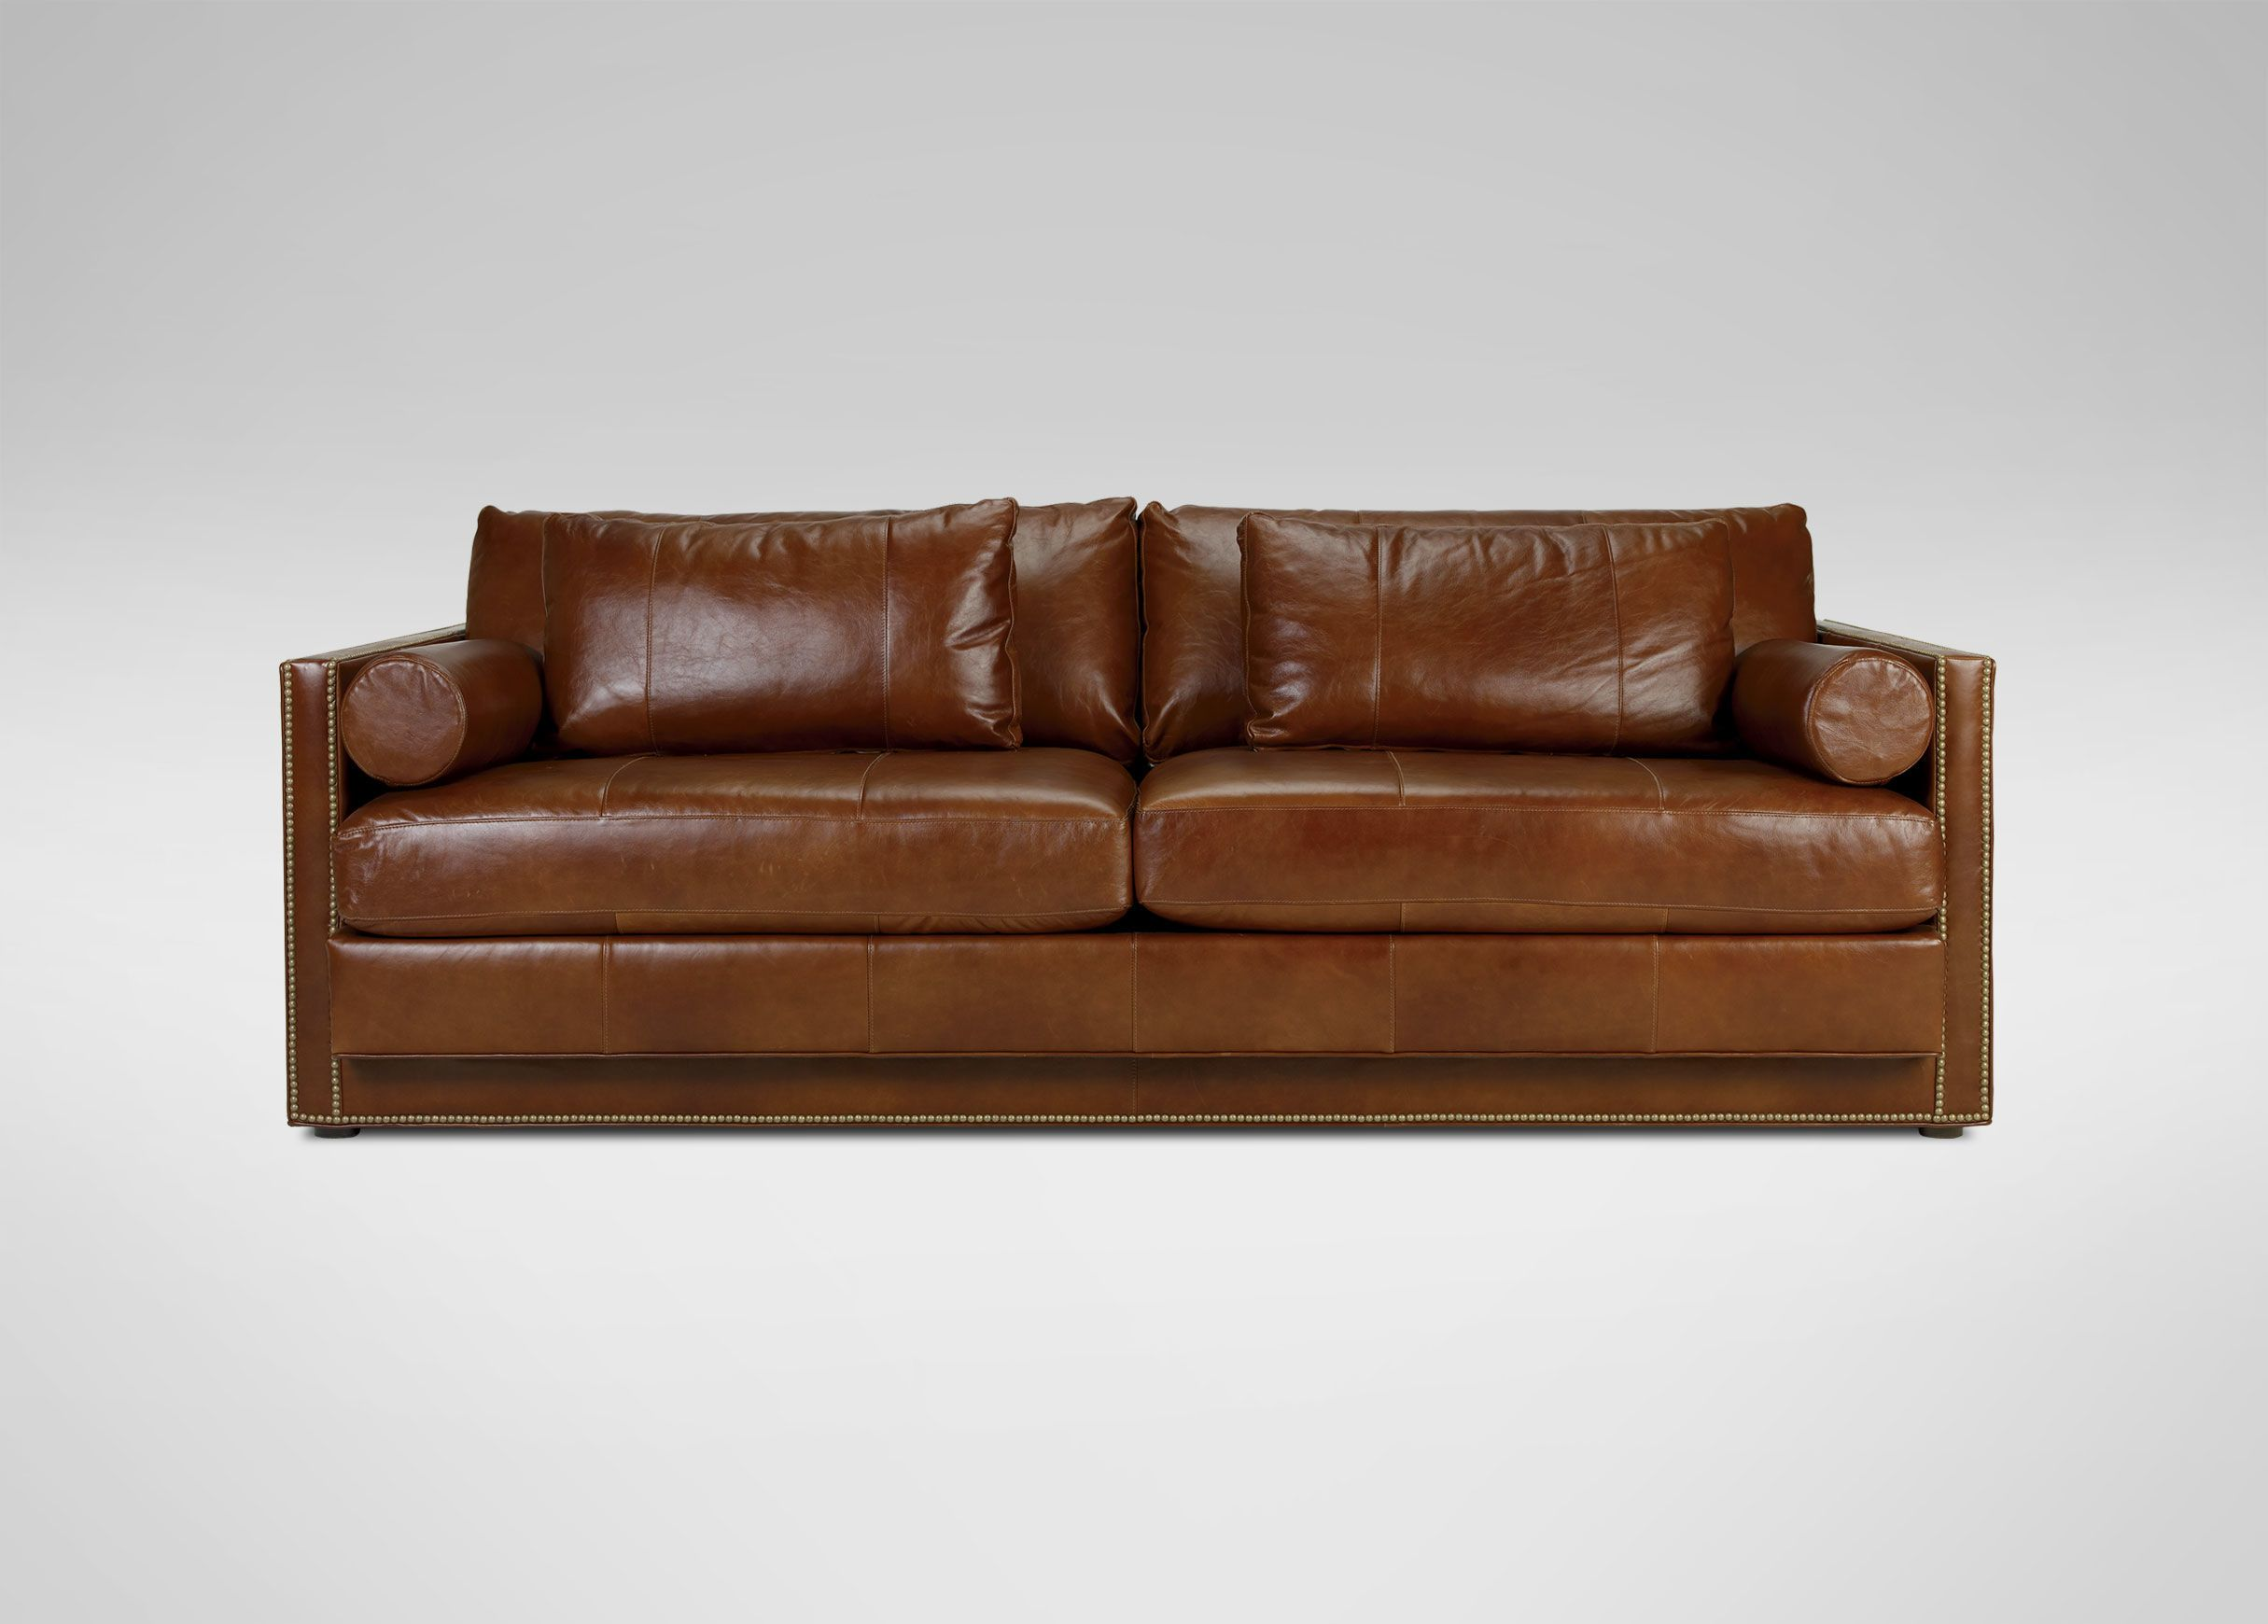 Abington Leather Sofa - Ethan Allen | h o m e | Tan leather sofas ...